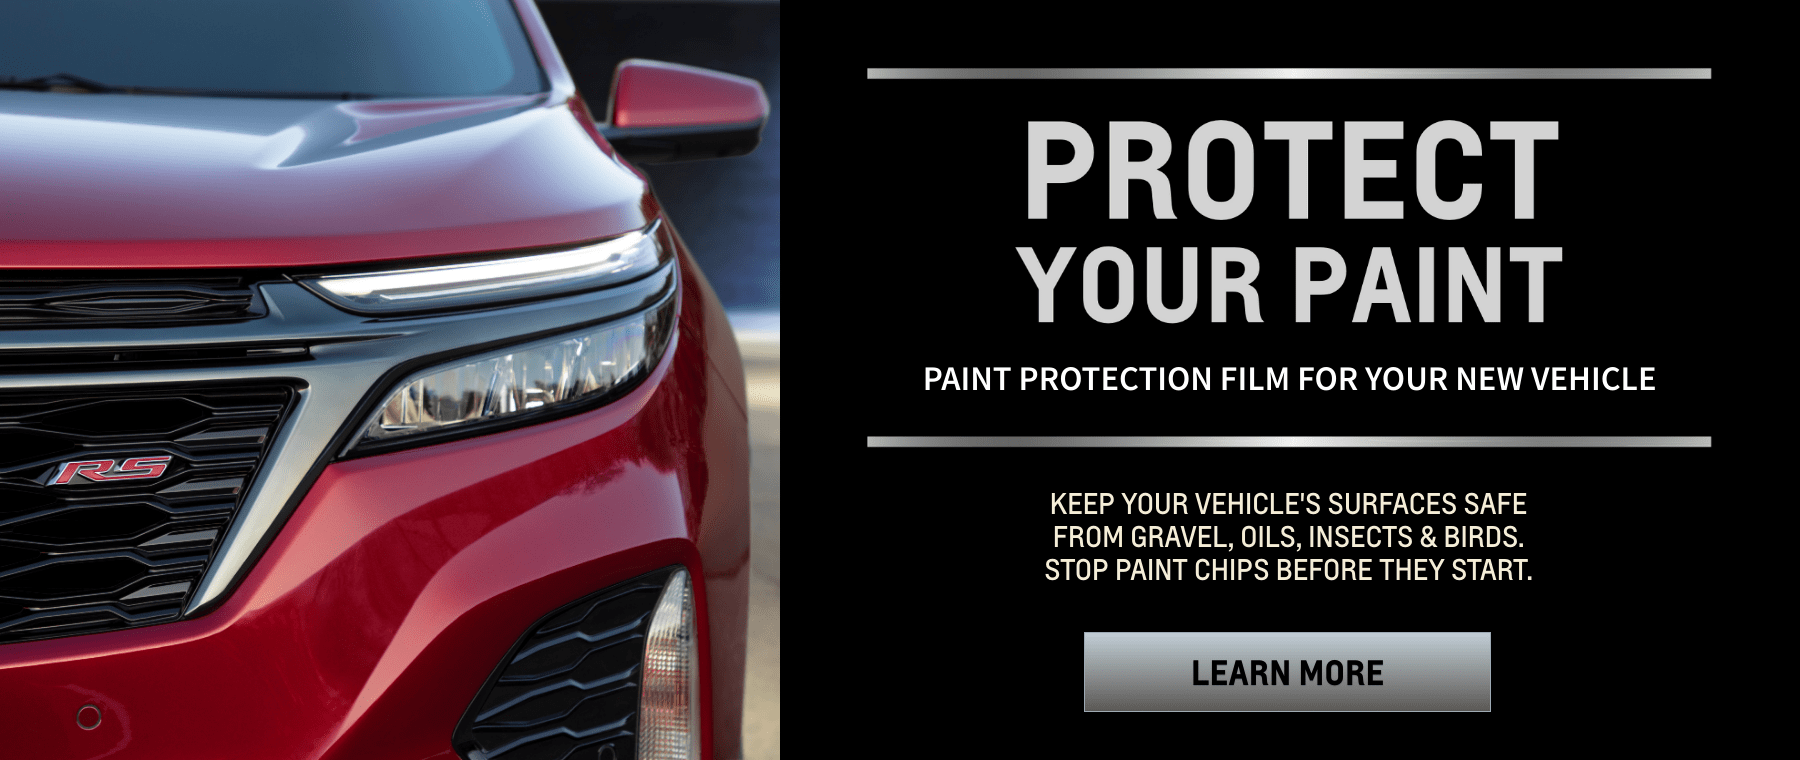 Protect Your Paint – LWC-1800x760px-Customsize1